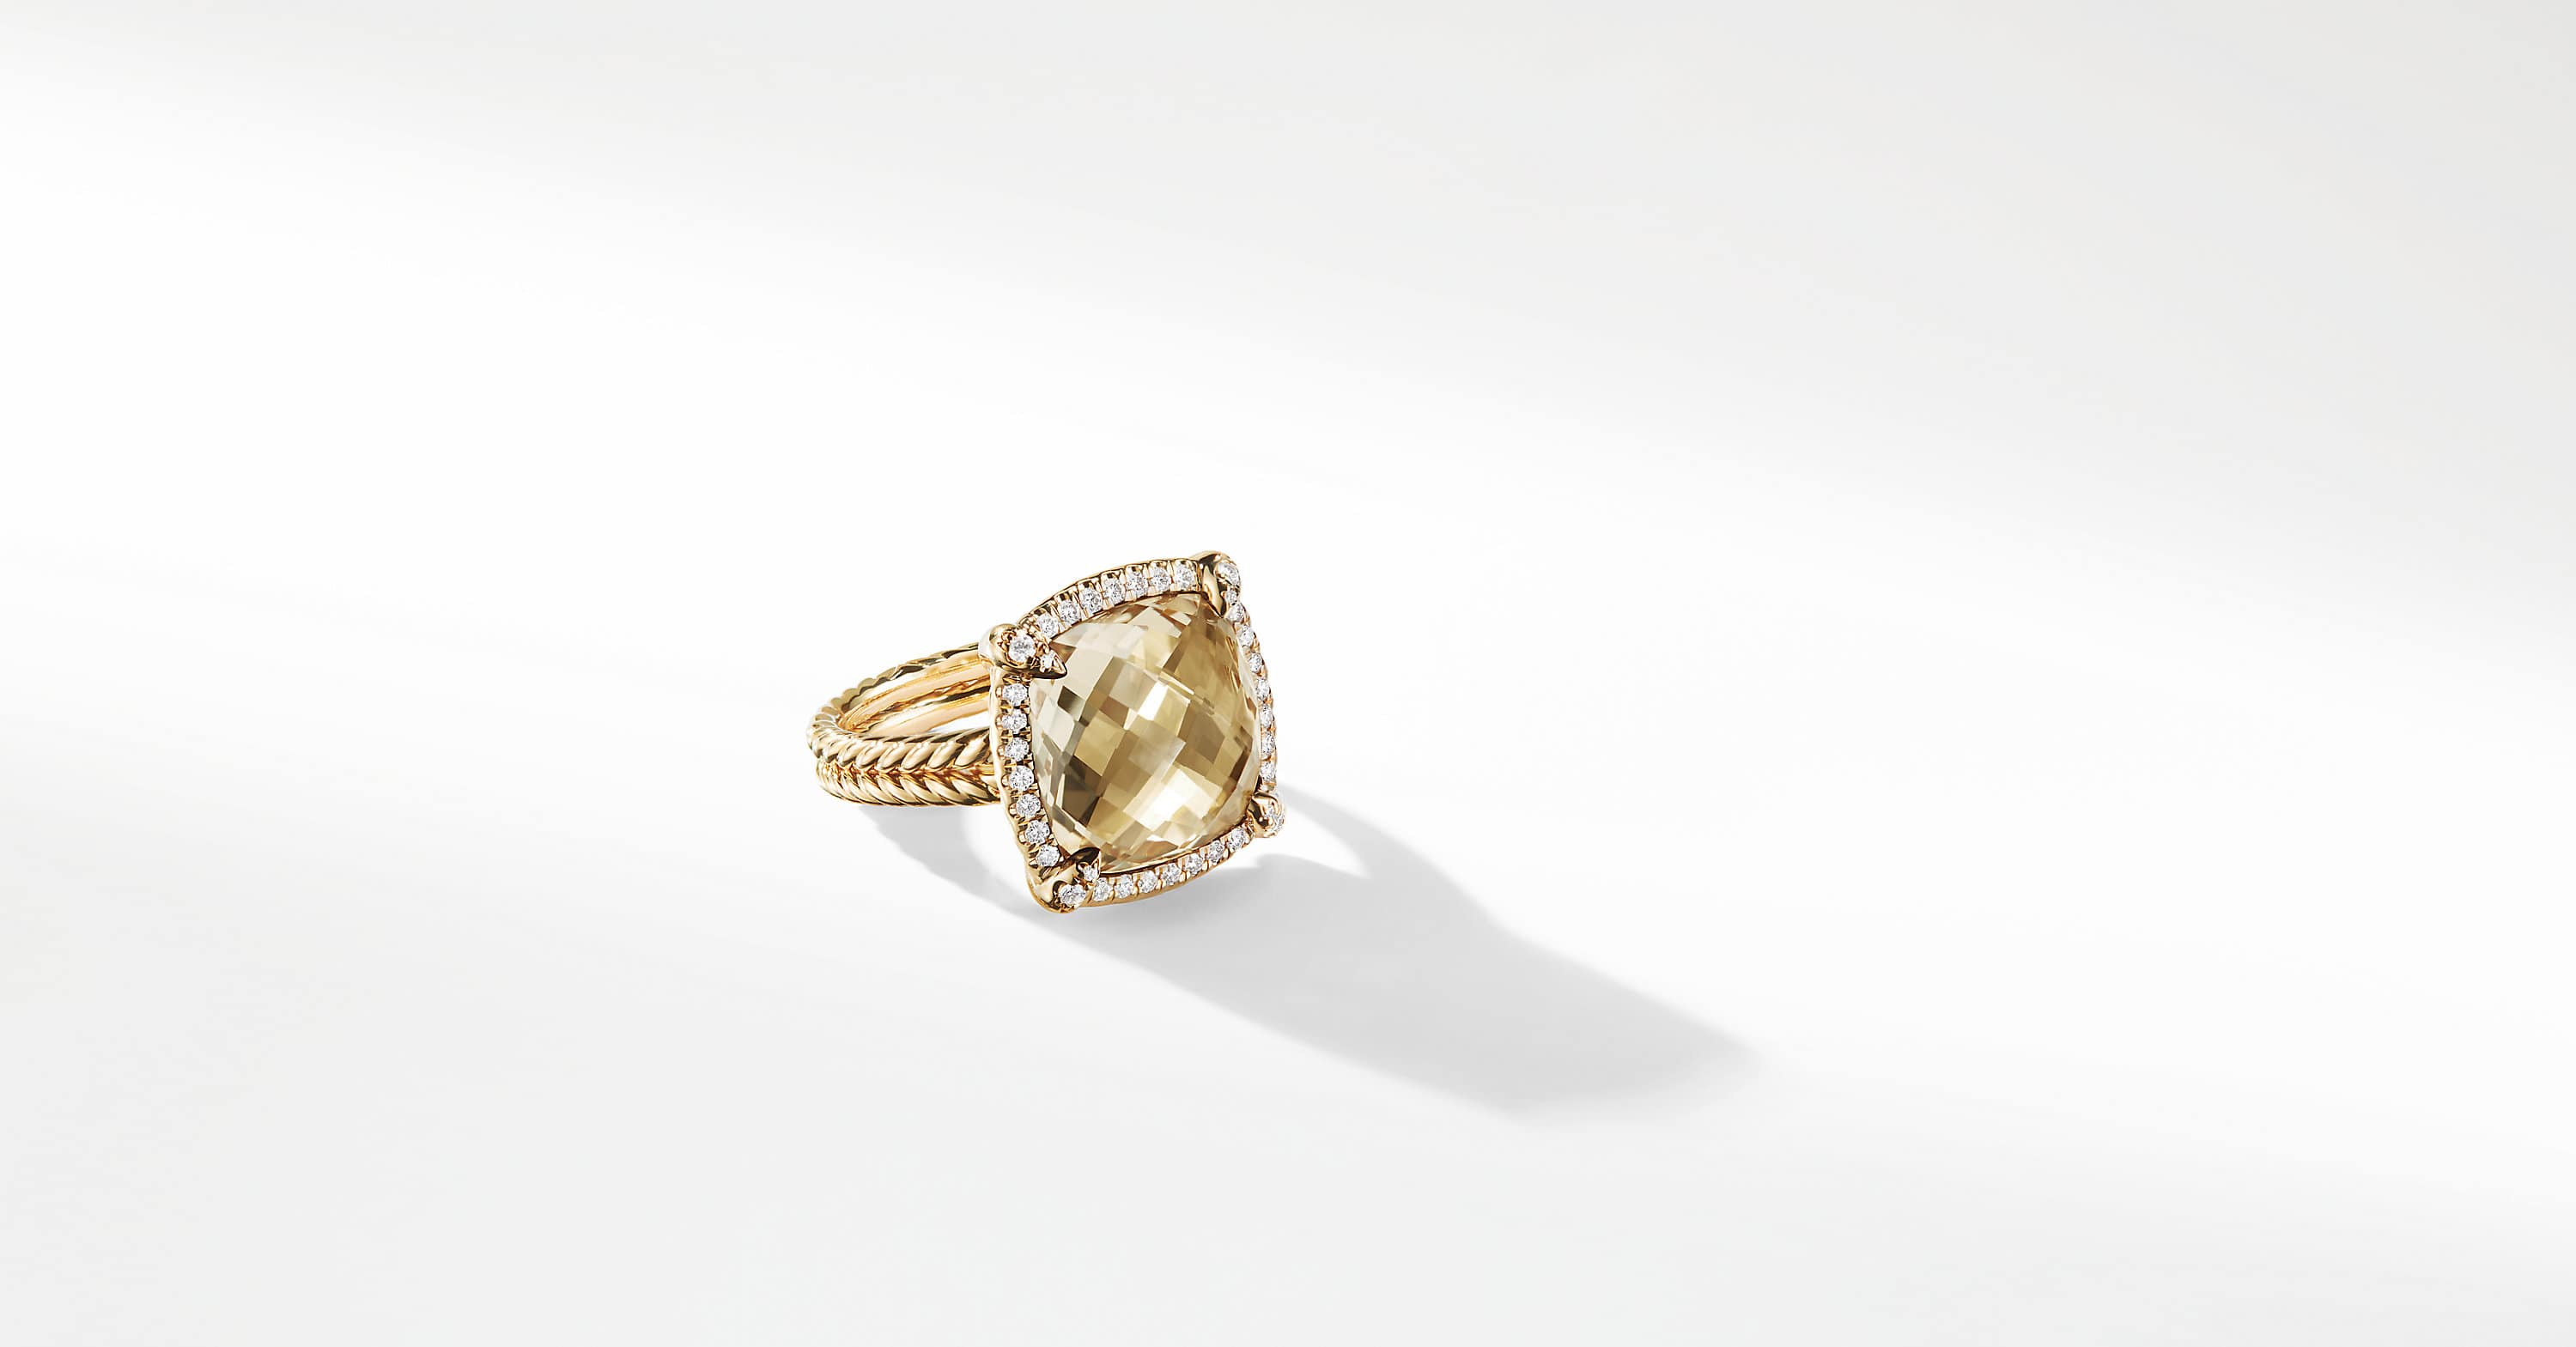 Chatelaine Pave Bezel Ring with Diamonds in 18K Gold, 14mm